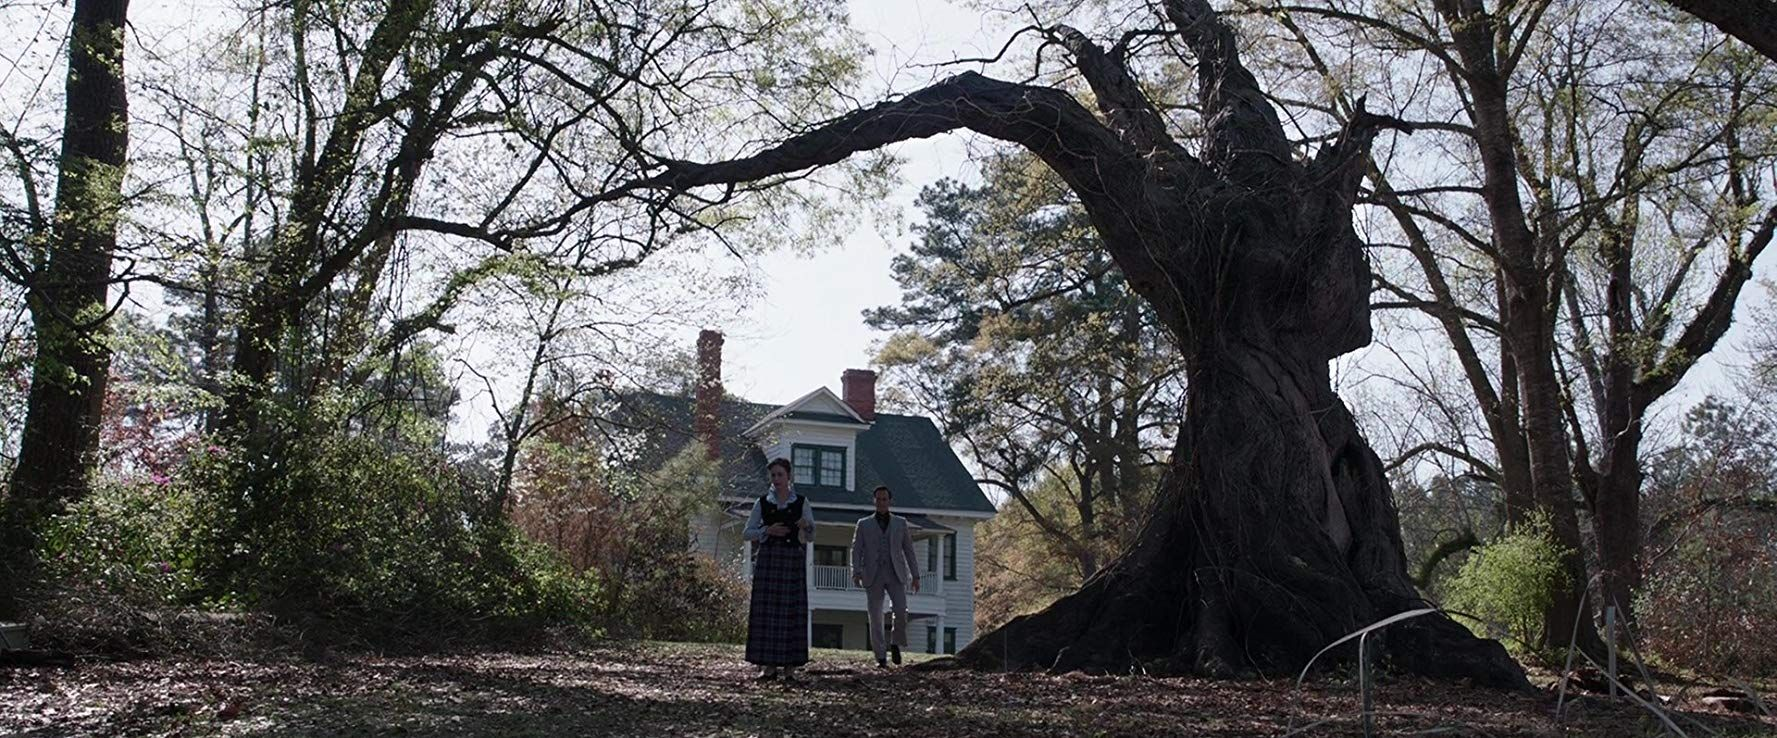 Fact to fiction: the farmhouse inspired the making of 'The Conjuring' horror flick.